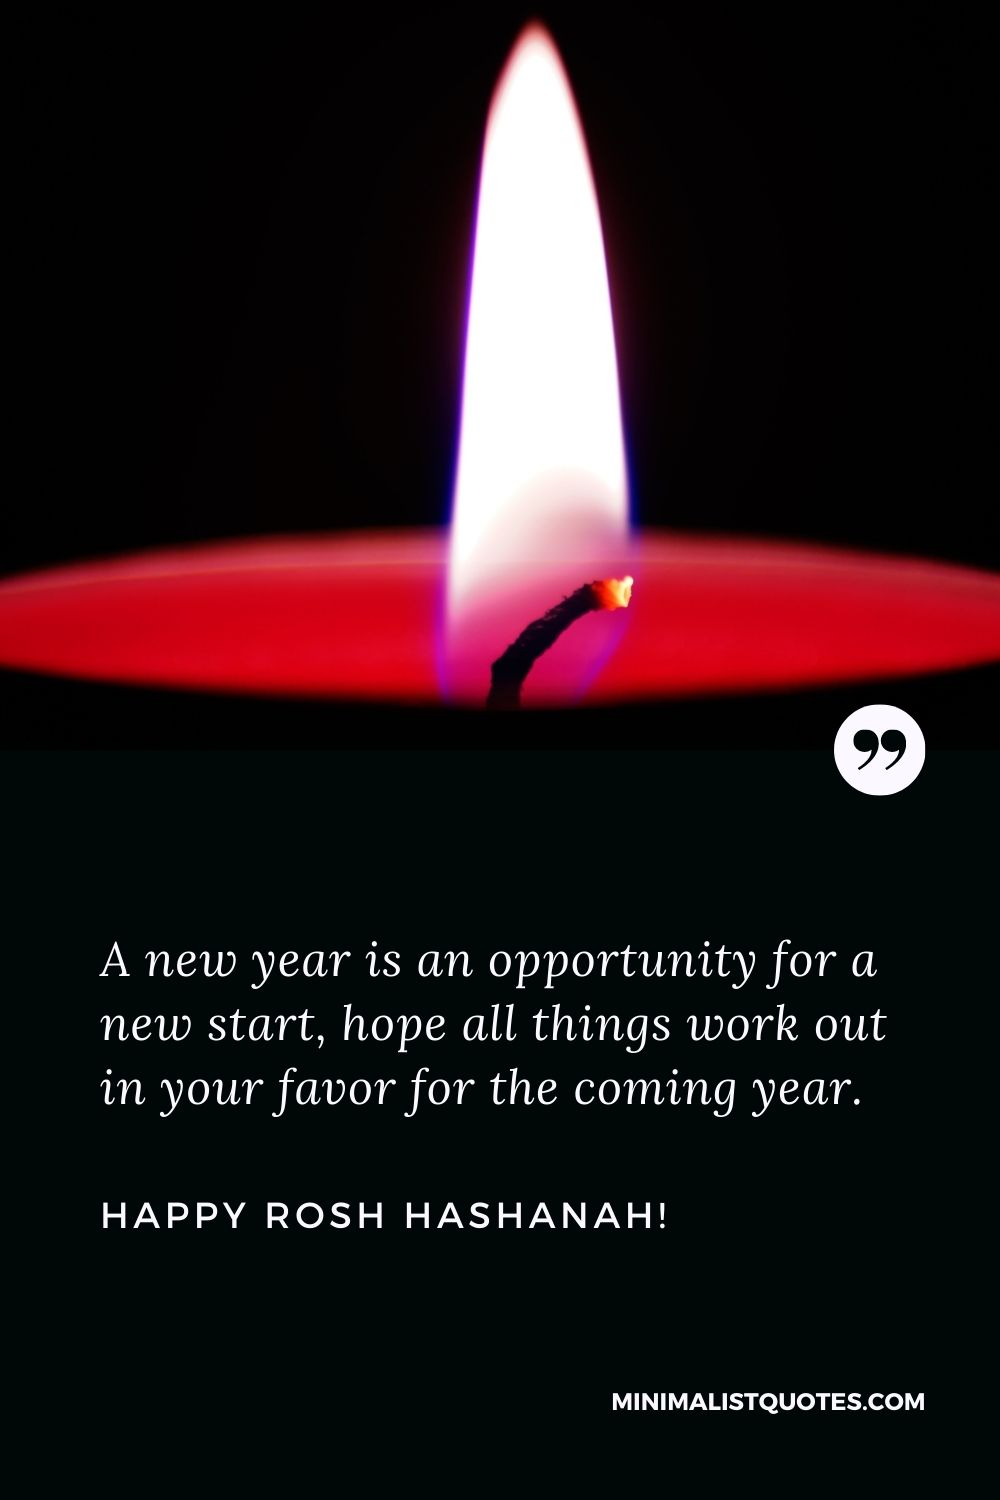 Rosh Hashanah wishes message: A new year is an opportunity for a new start, hope all things work out in your favor for the coming year.